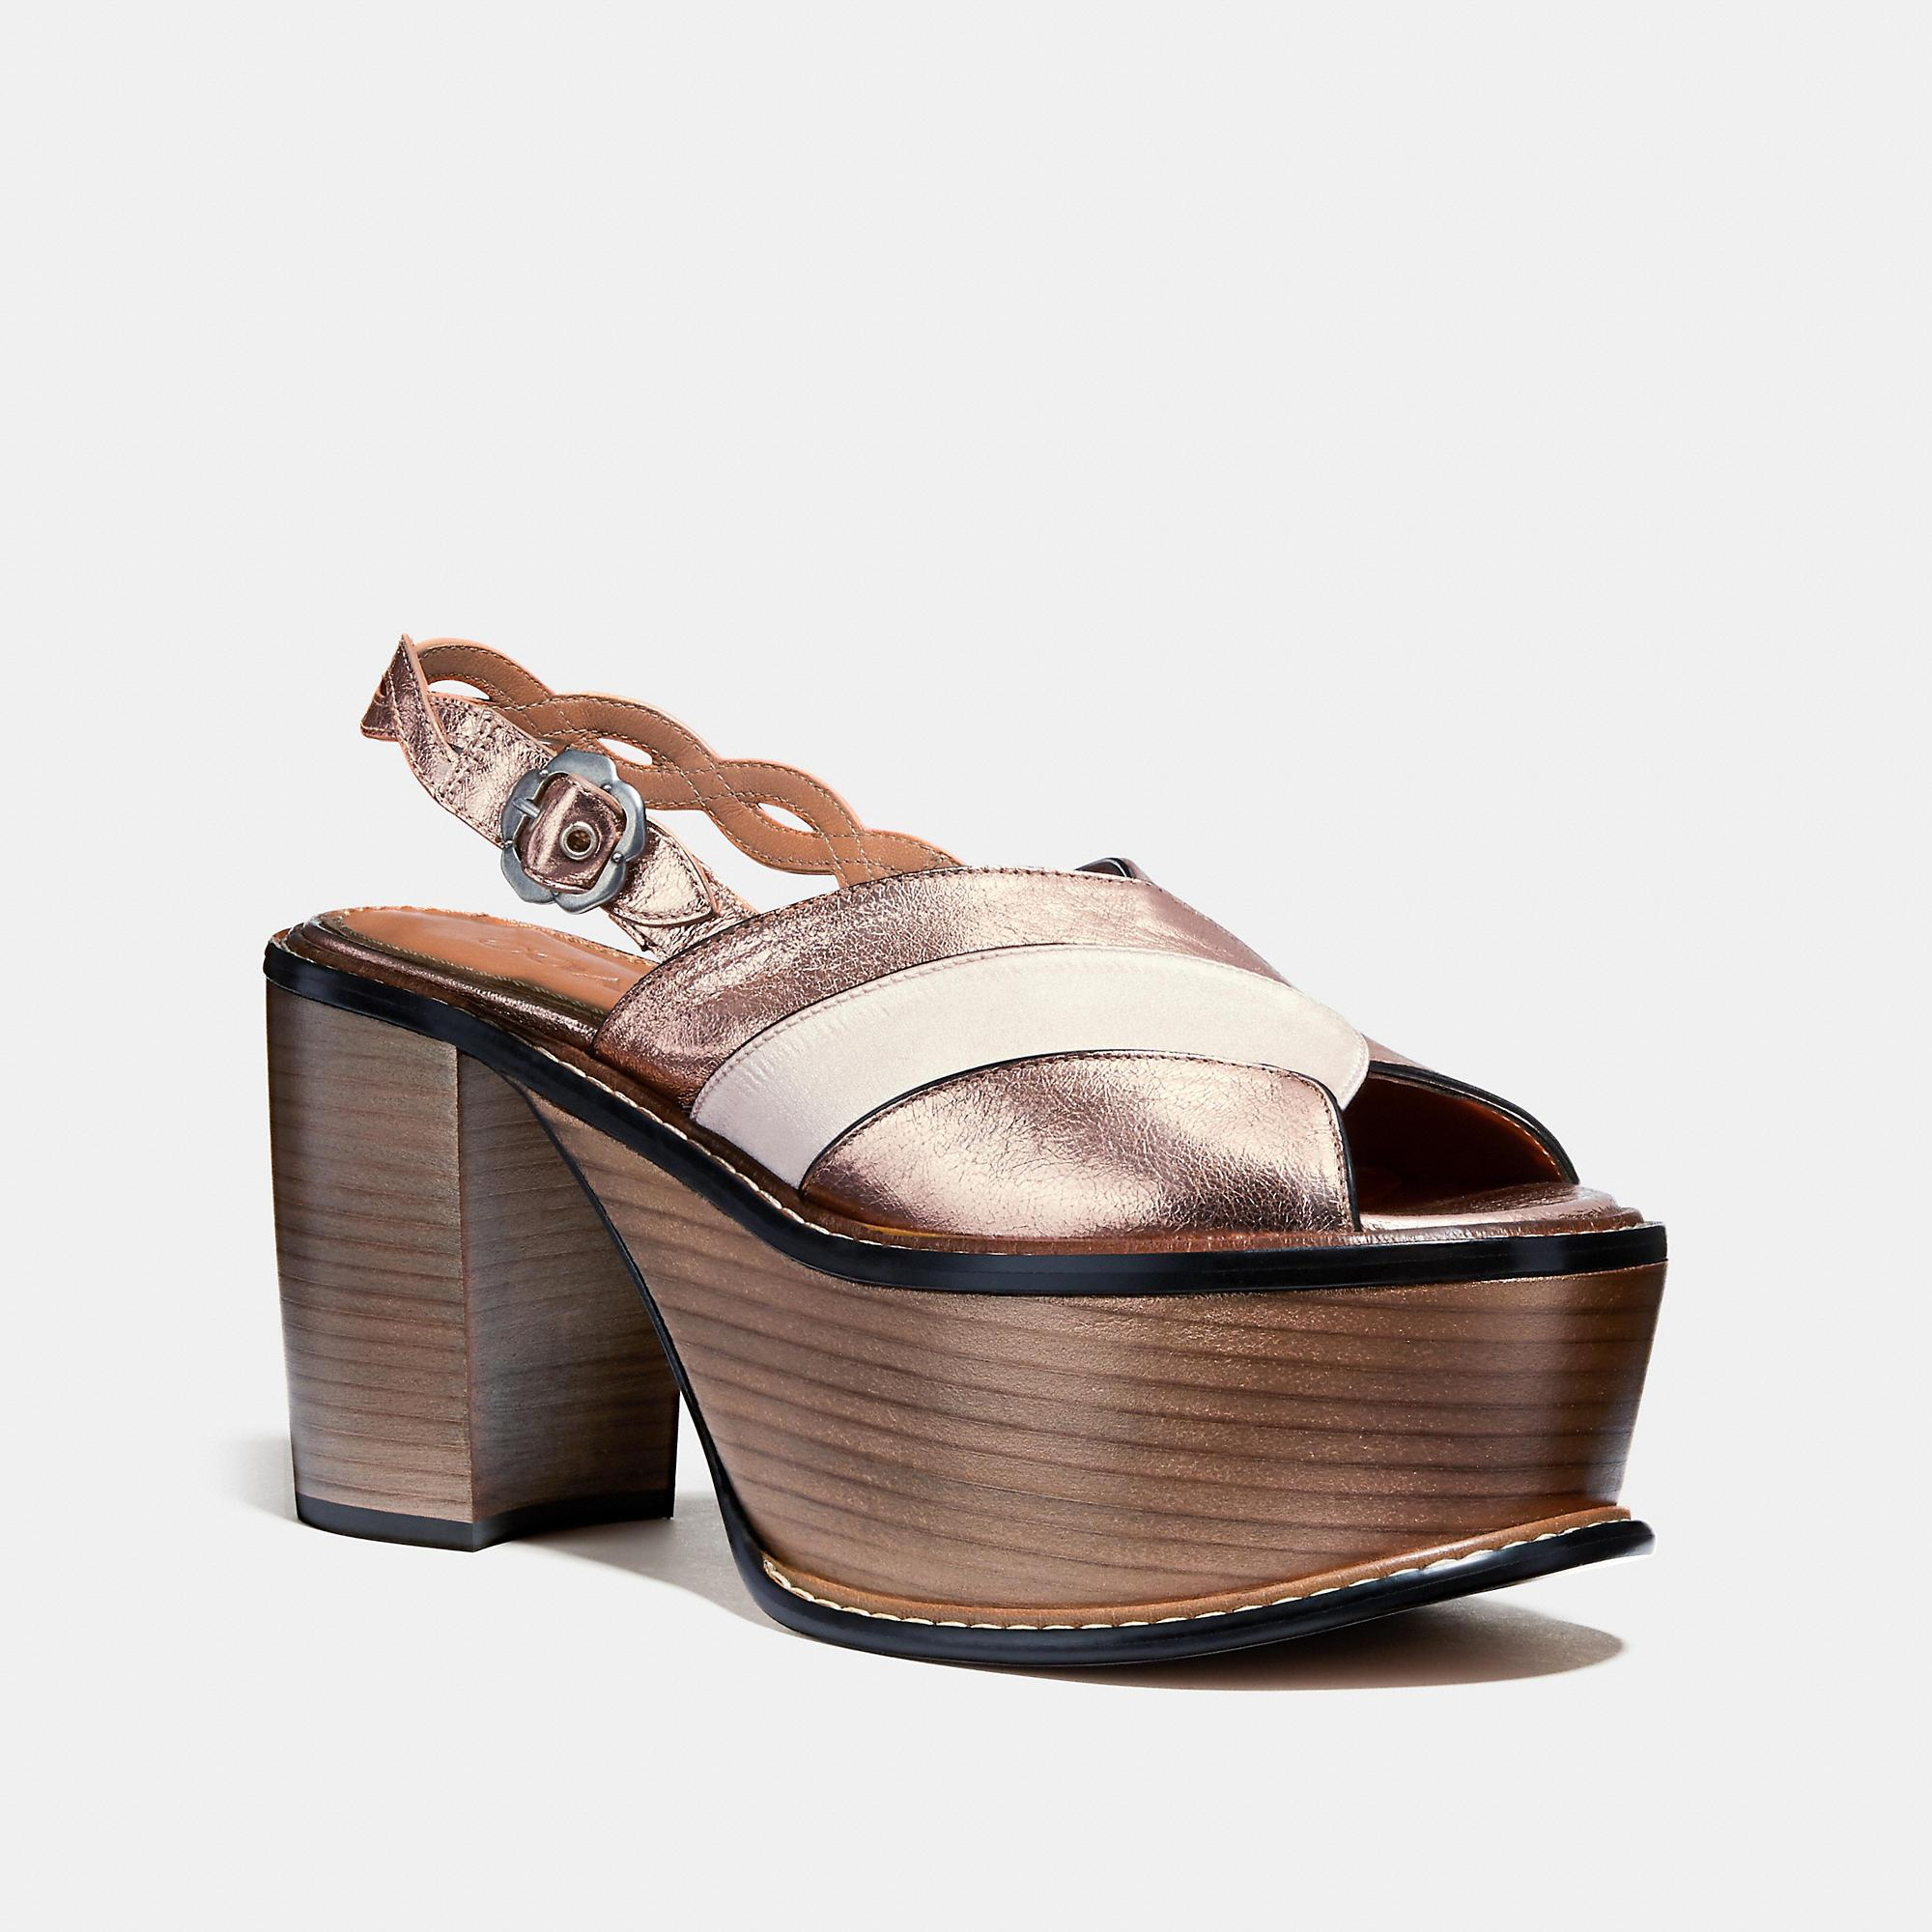 Coach Platform Sandal In Rose Gold/rose Gold